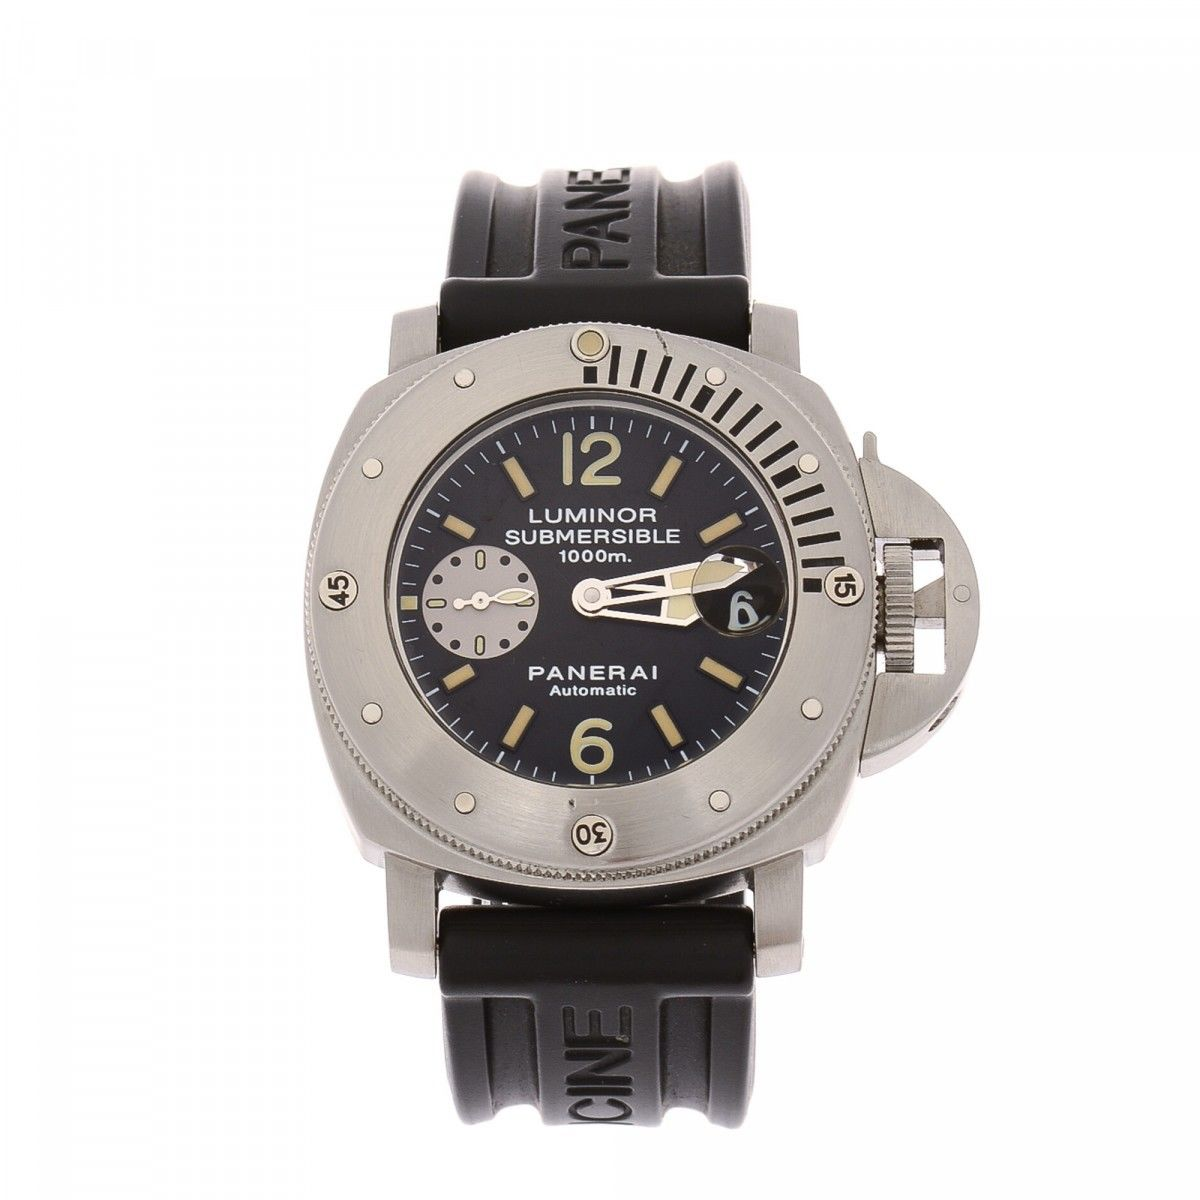 from watches xxl a htm for seller luminor trusted sale submersible on panerai